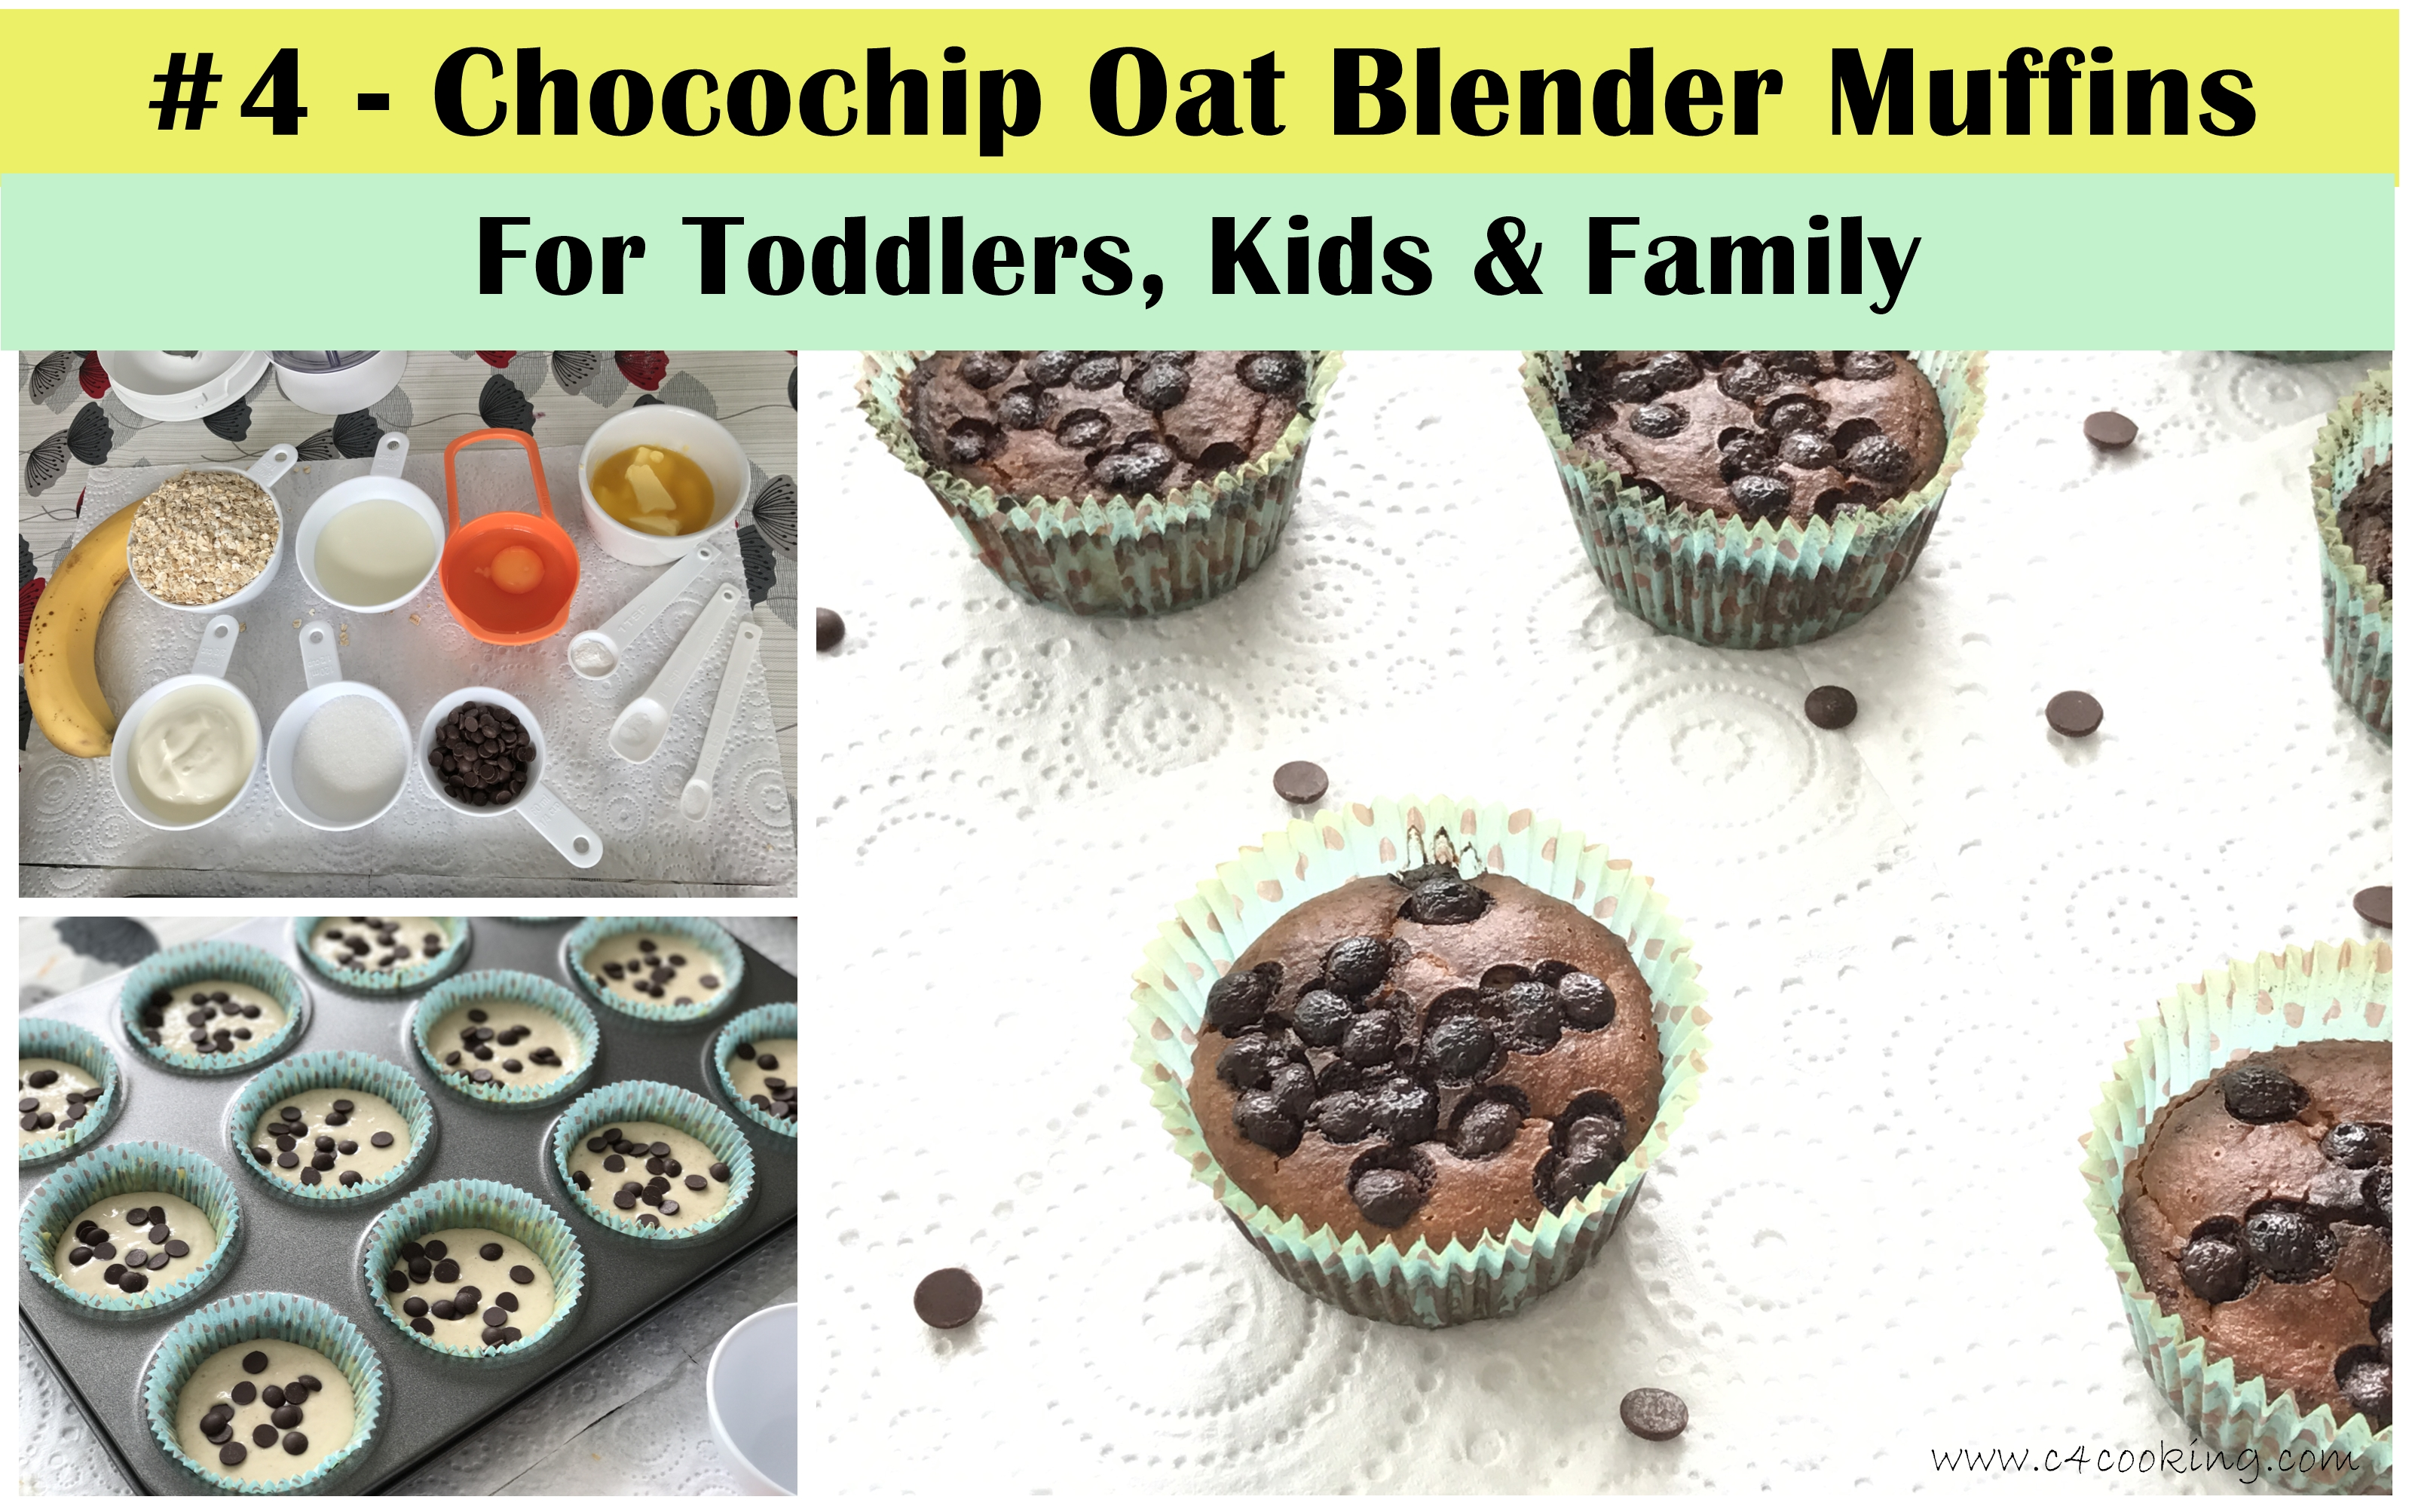 Chocolate chip oat blender muffins